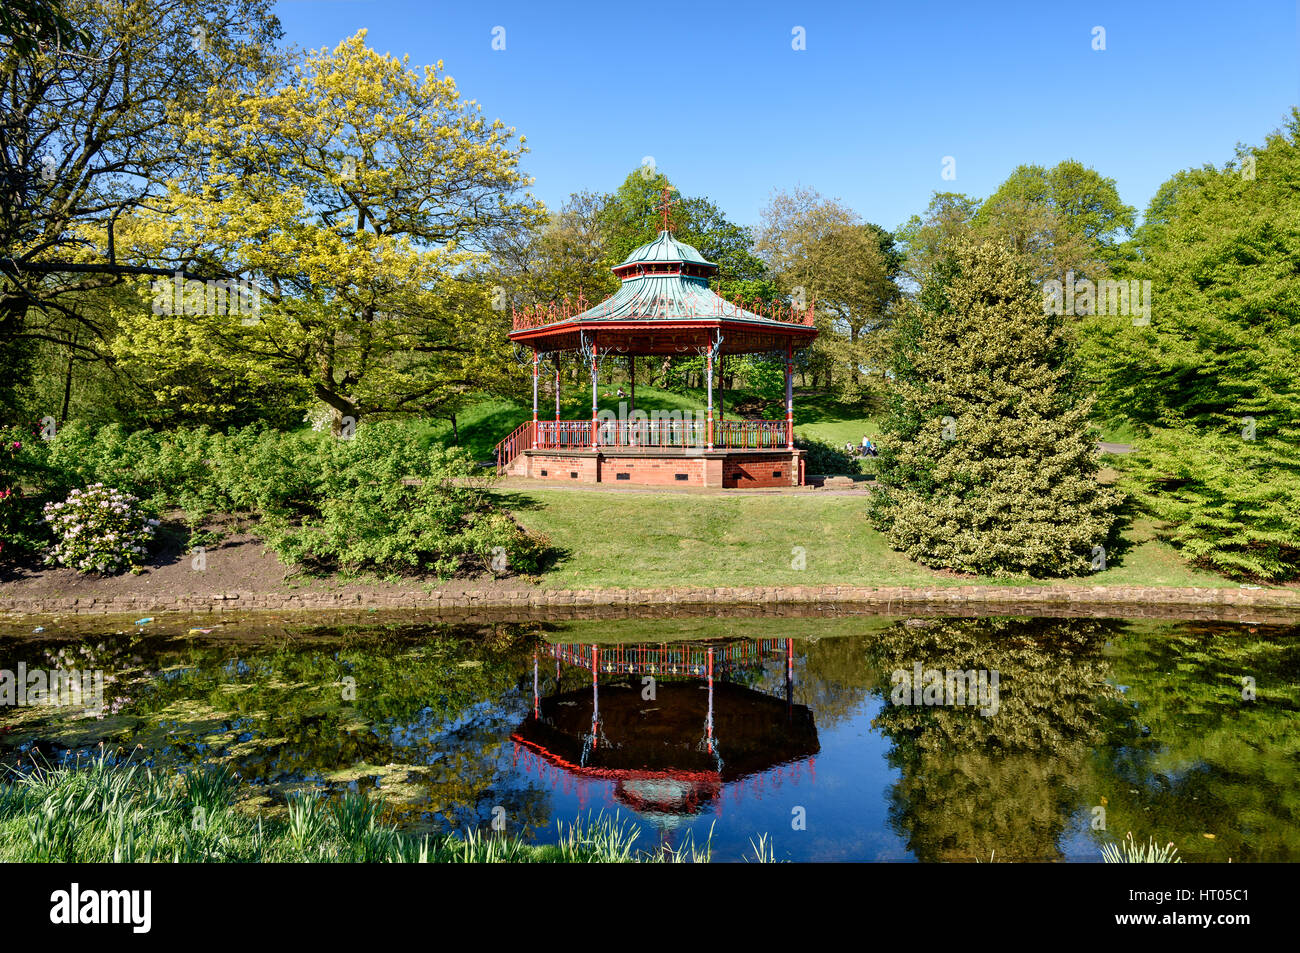 Bandstand in Sefton Park, Liverpool - Stock Image